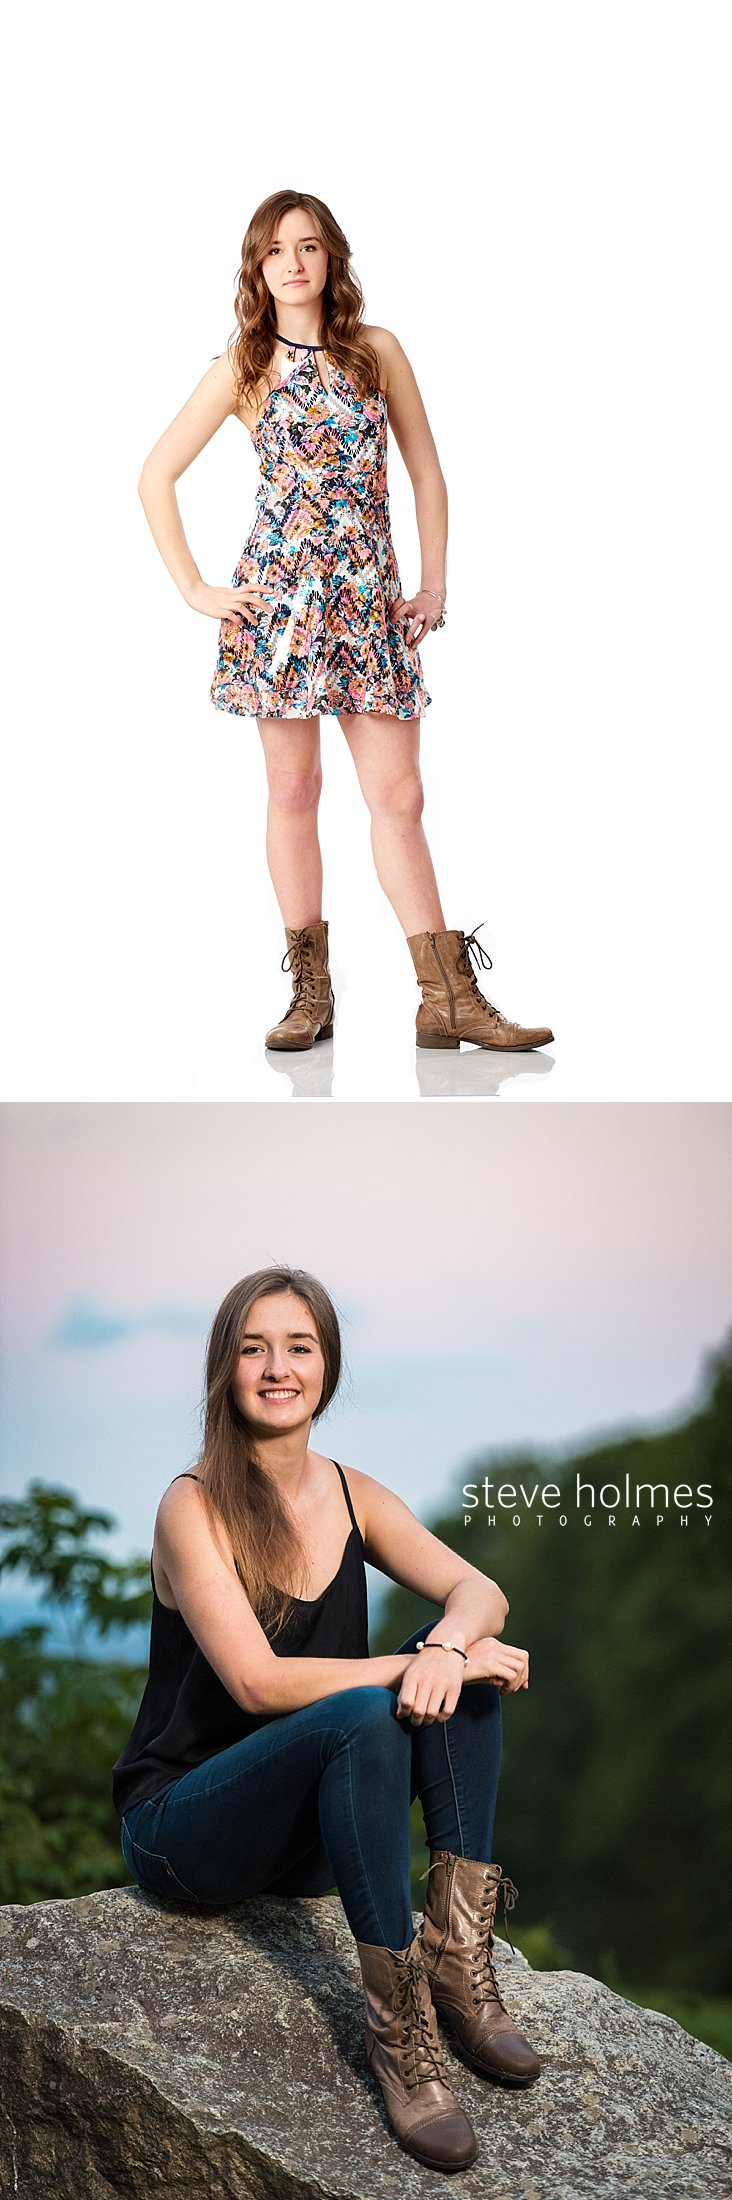 02_Teenaged girl wearing patterned dress and brown boots poses standing for studio senior portrait.jpg